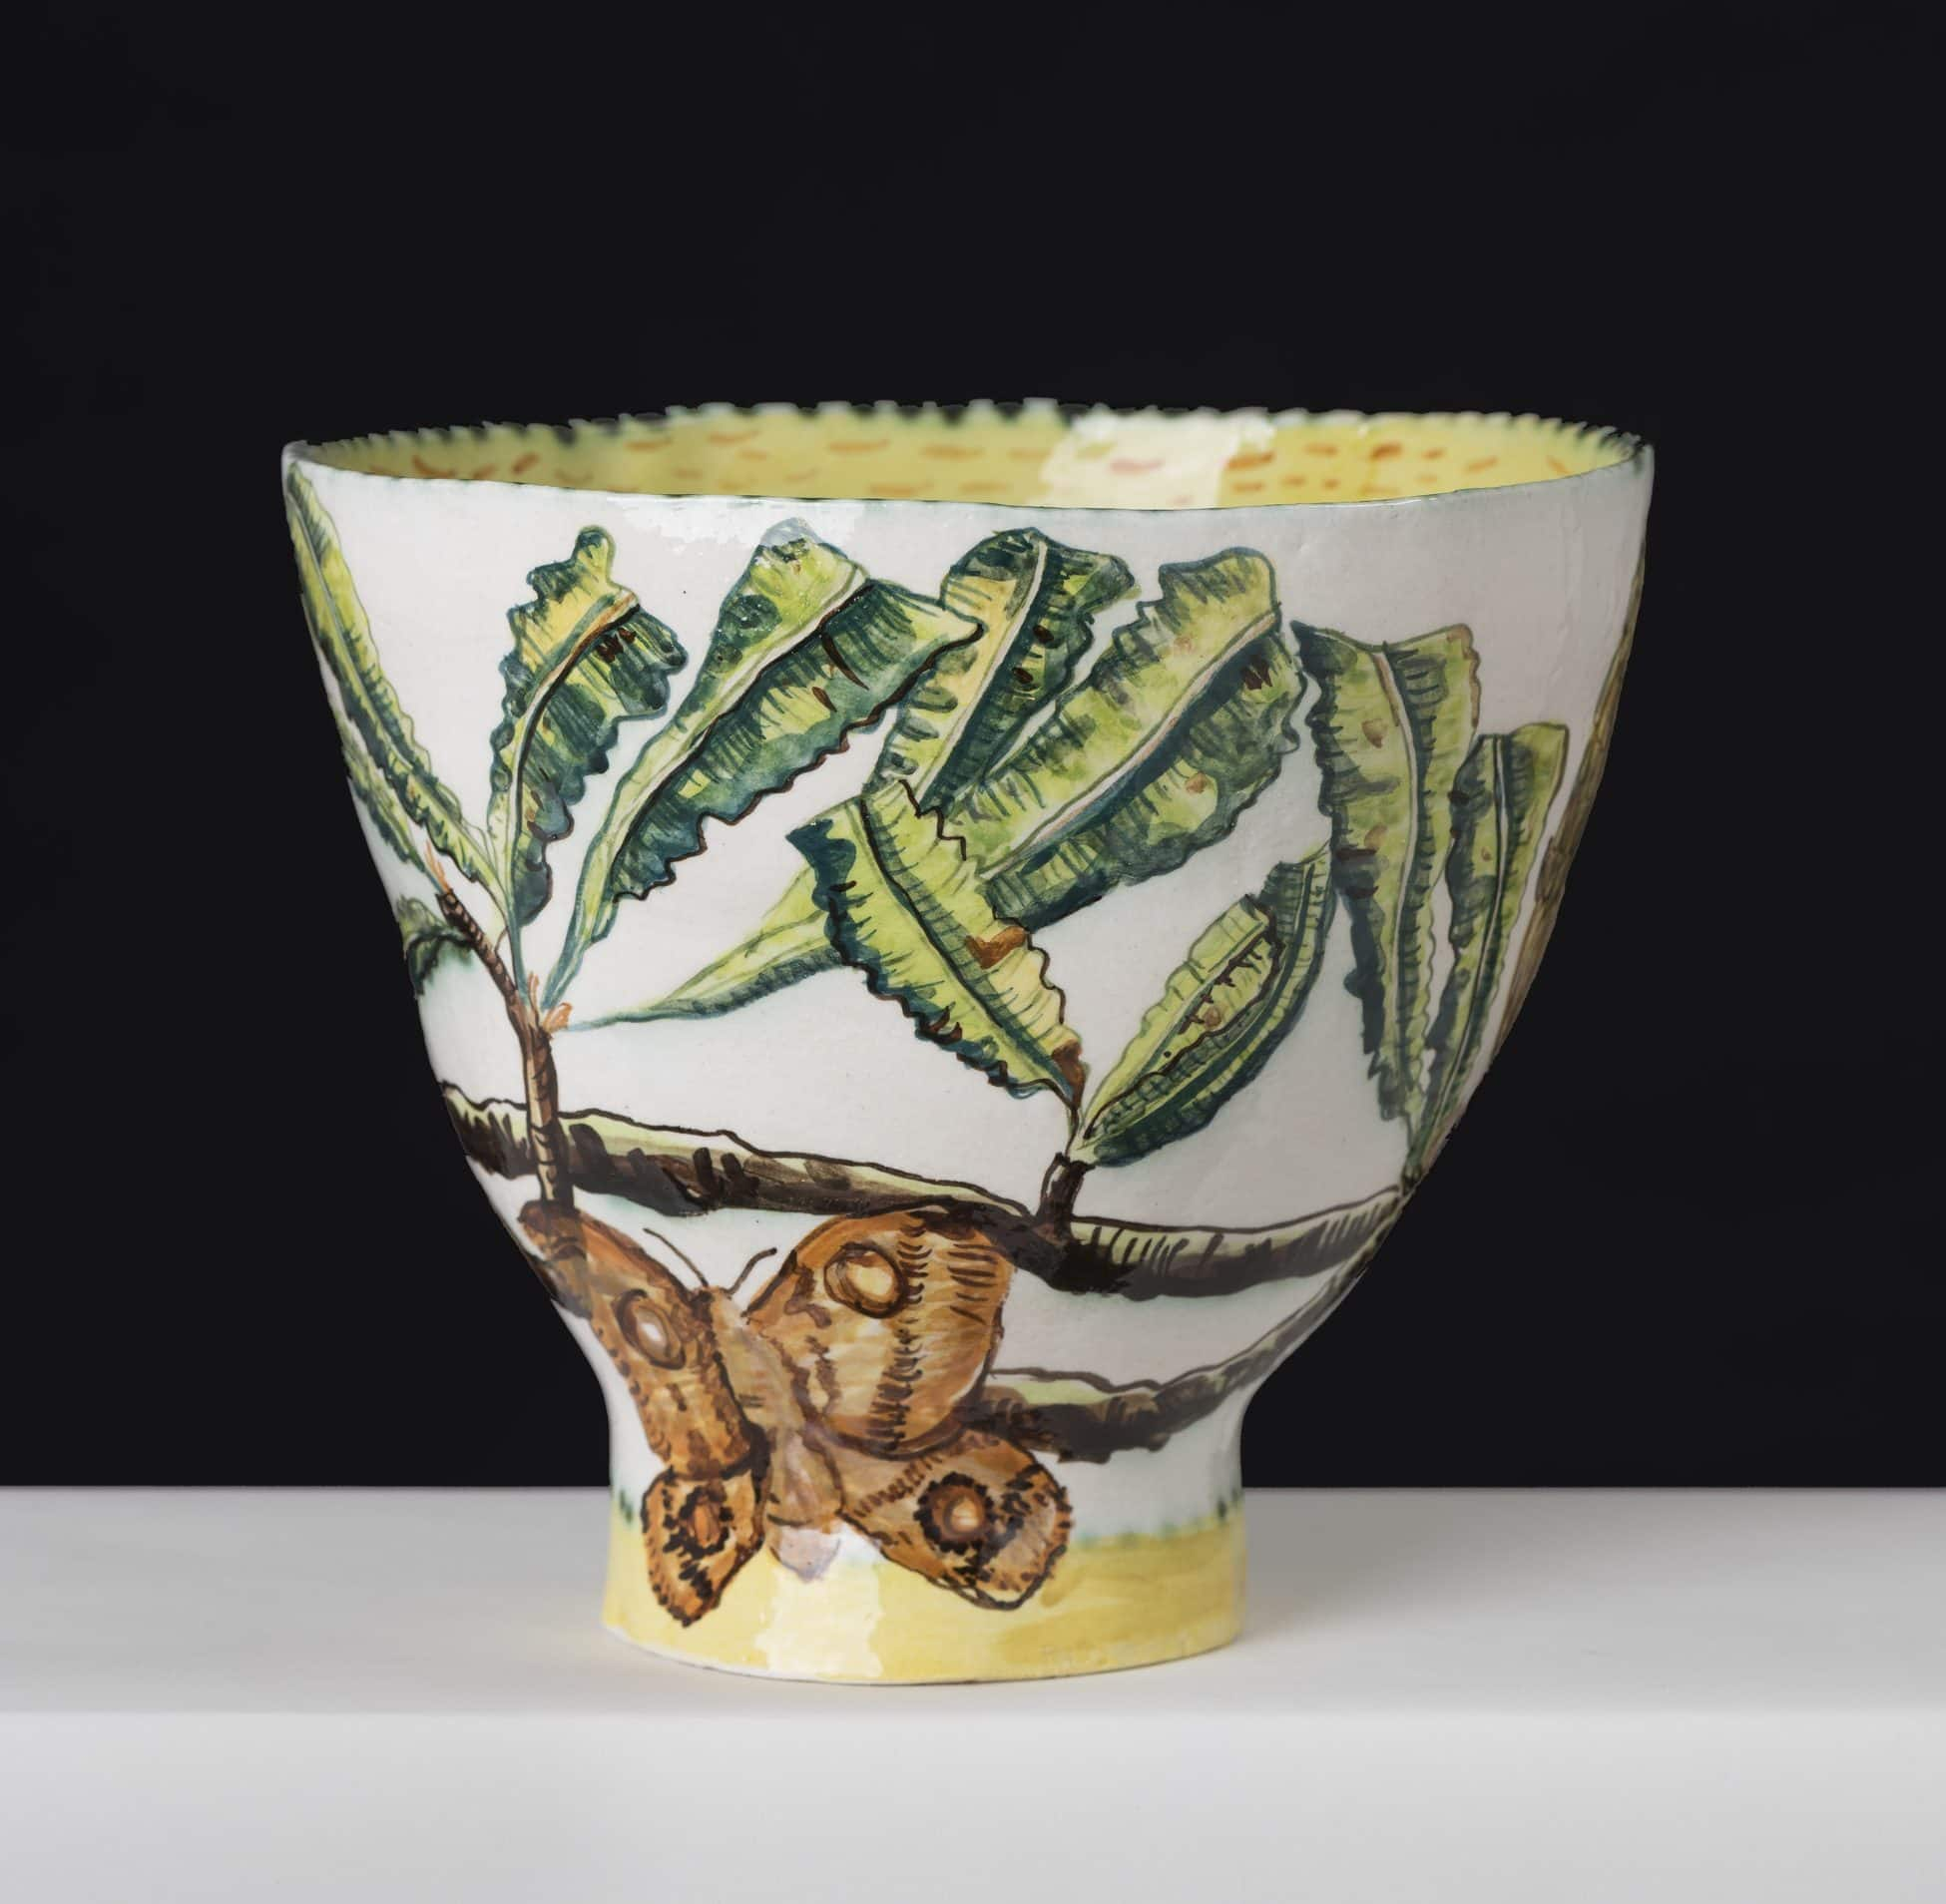 Banksia And Bogong Moth Bowl By Fiona Hiscock